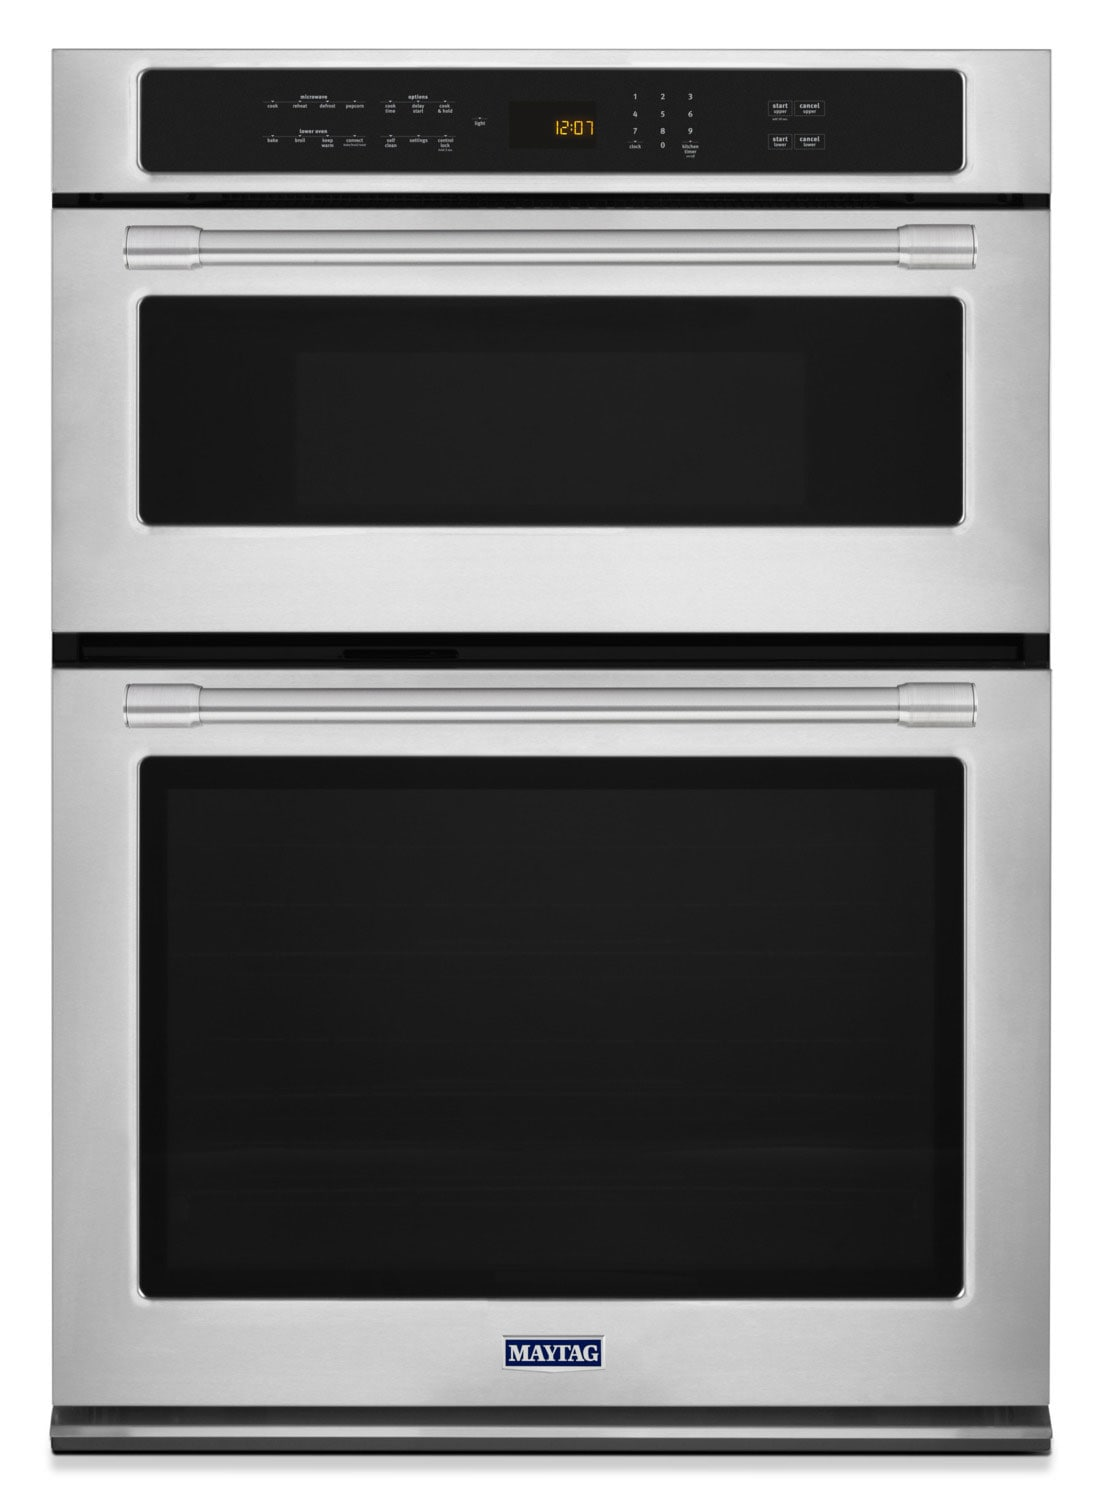 Cooking Products - Maytag 6.4 Cu. Ft. Combination Wall Oven – MMW9730FZ